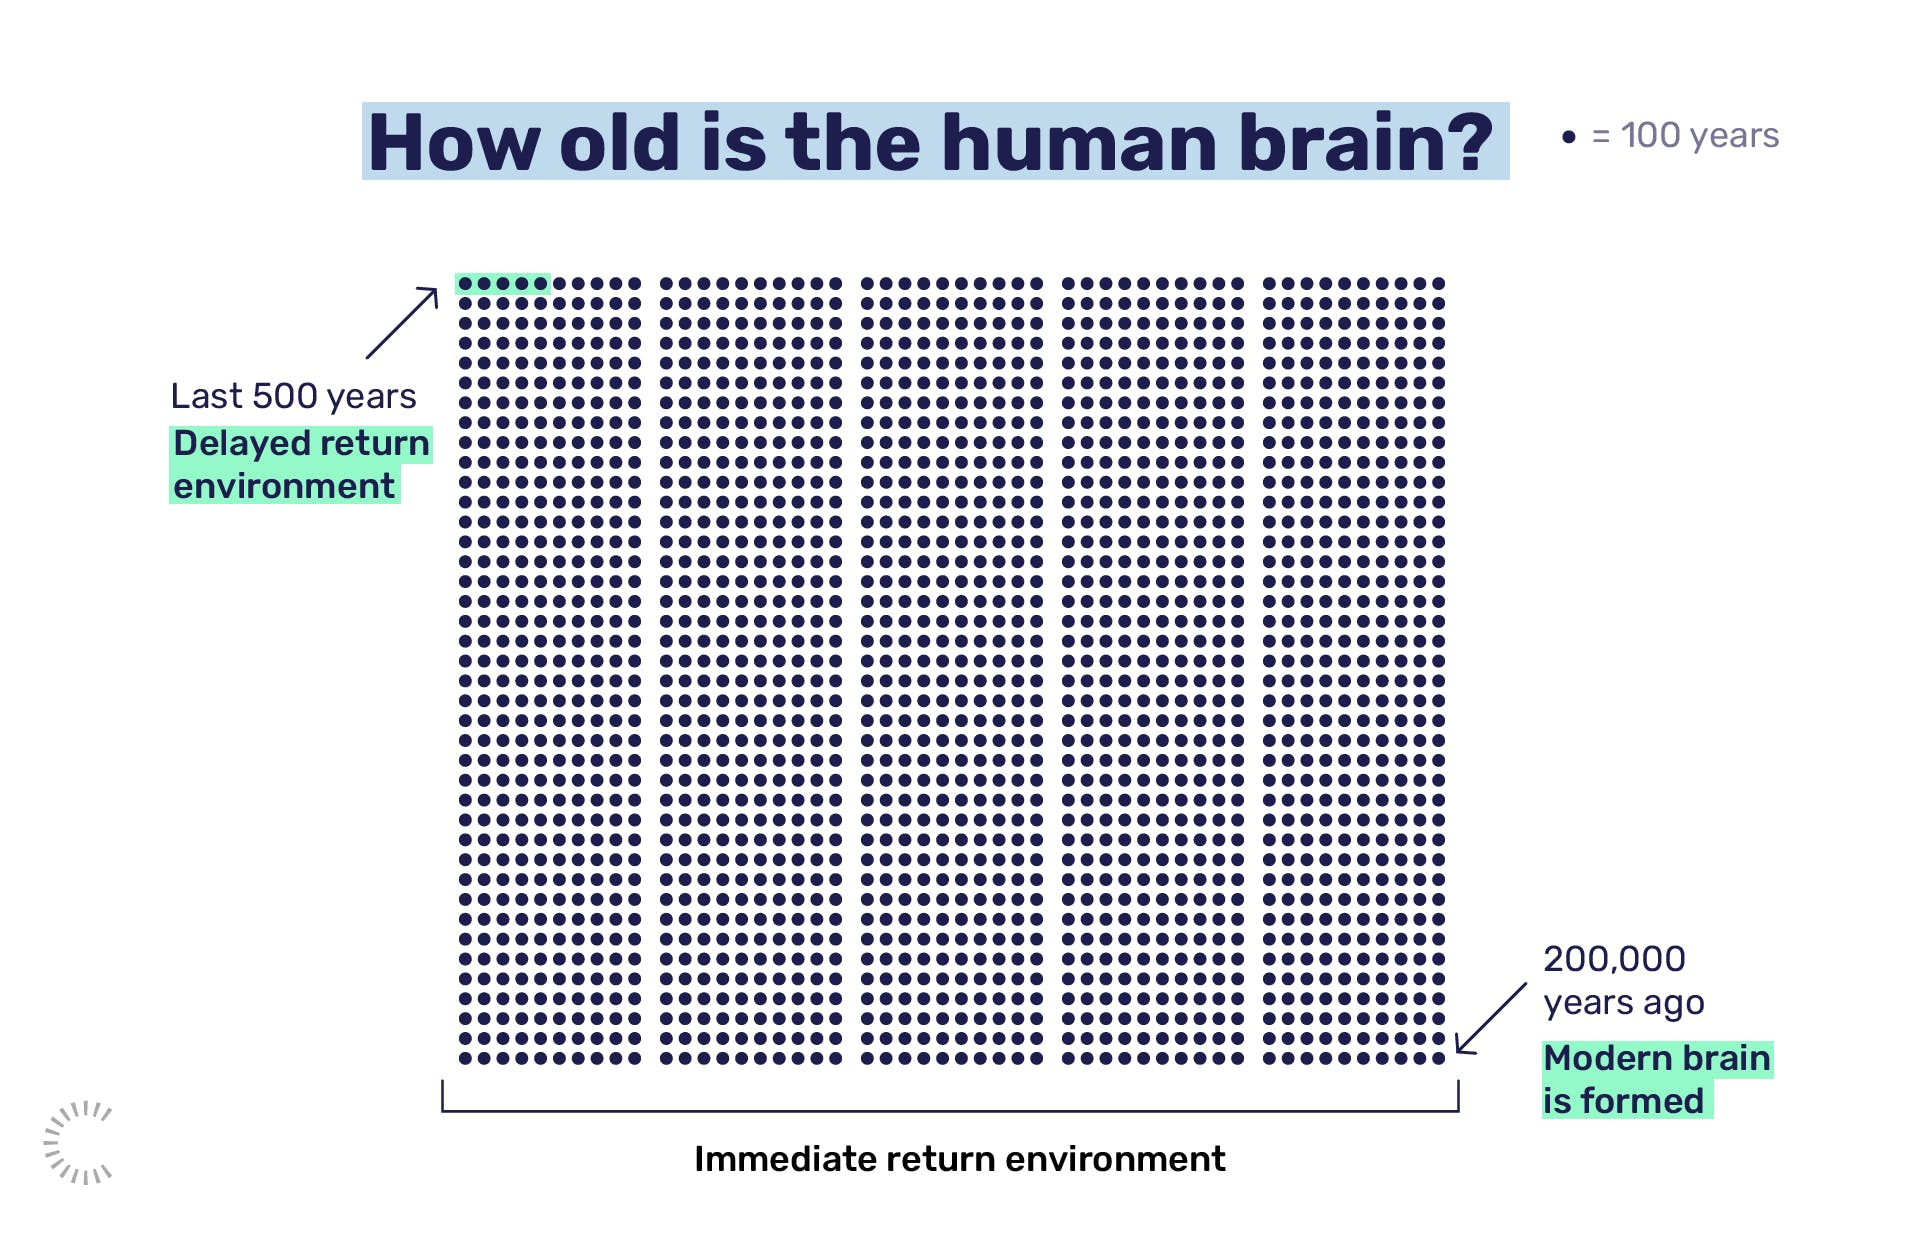 How old is the human brain?